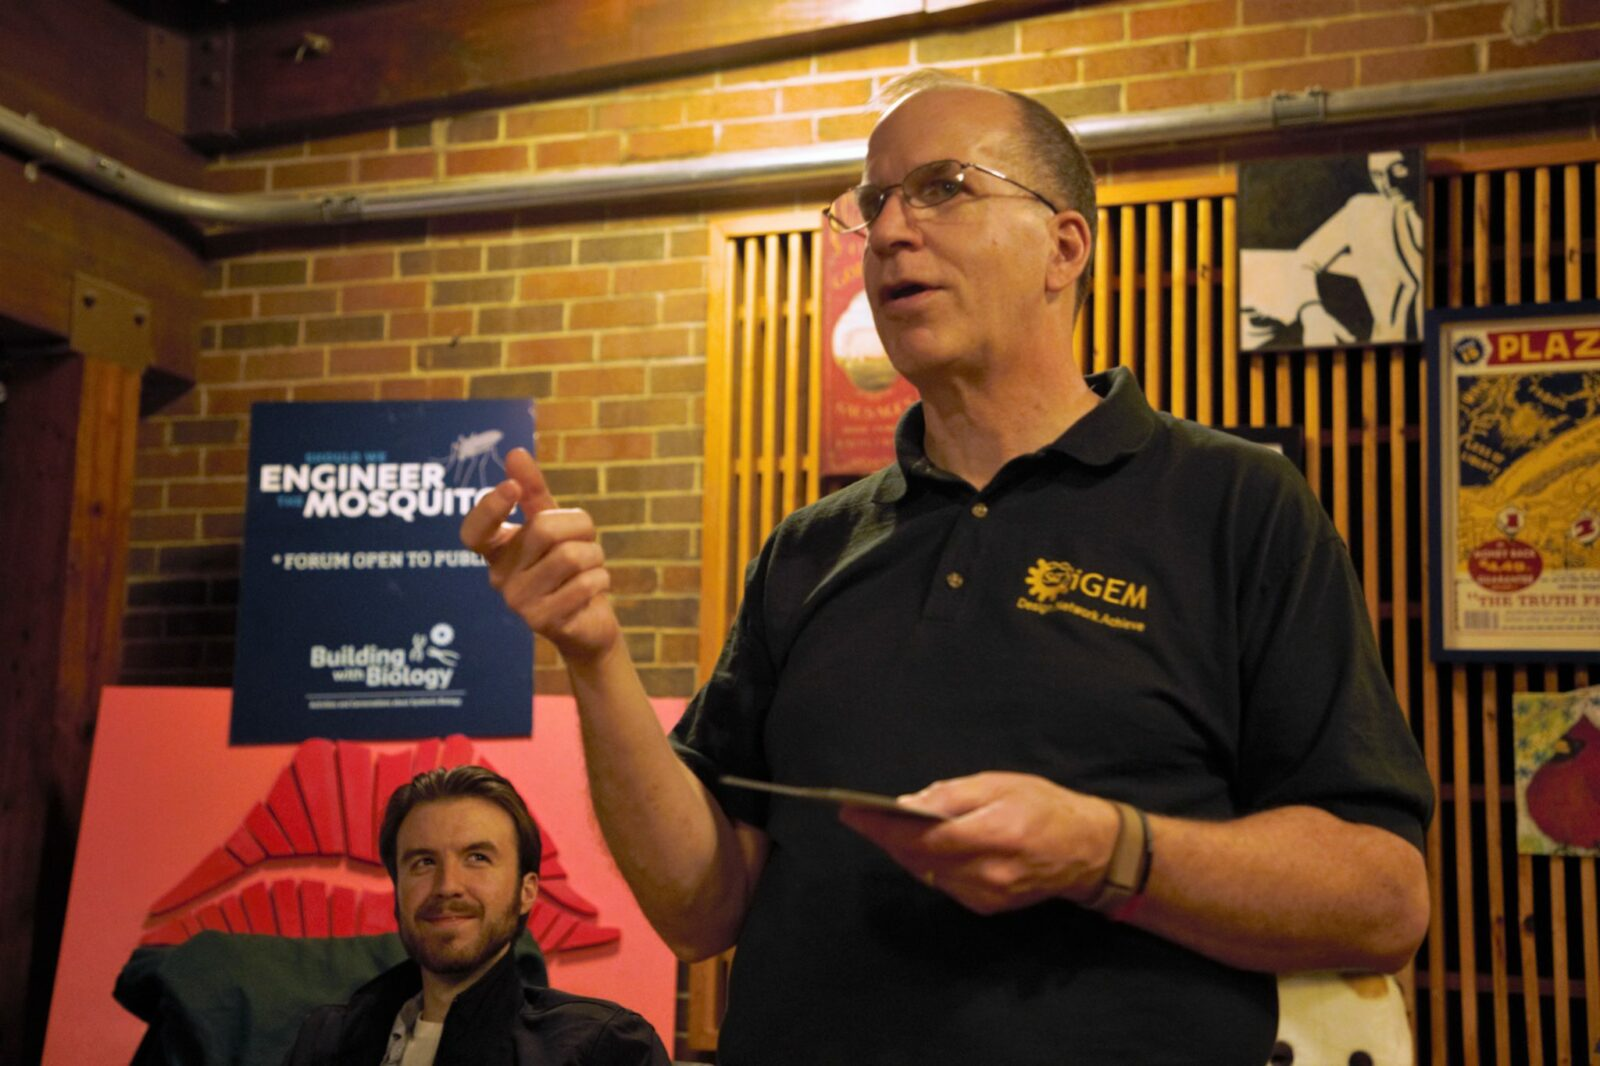 Dr. Dave Westenberg (right) speaks during the first Research on Tap social hour at Public House Brewing Company in Rolla. Greg Katski/Missouri S&T